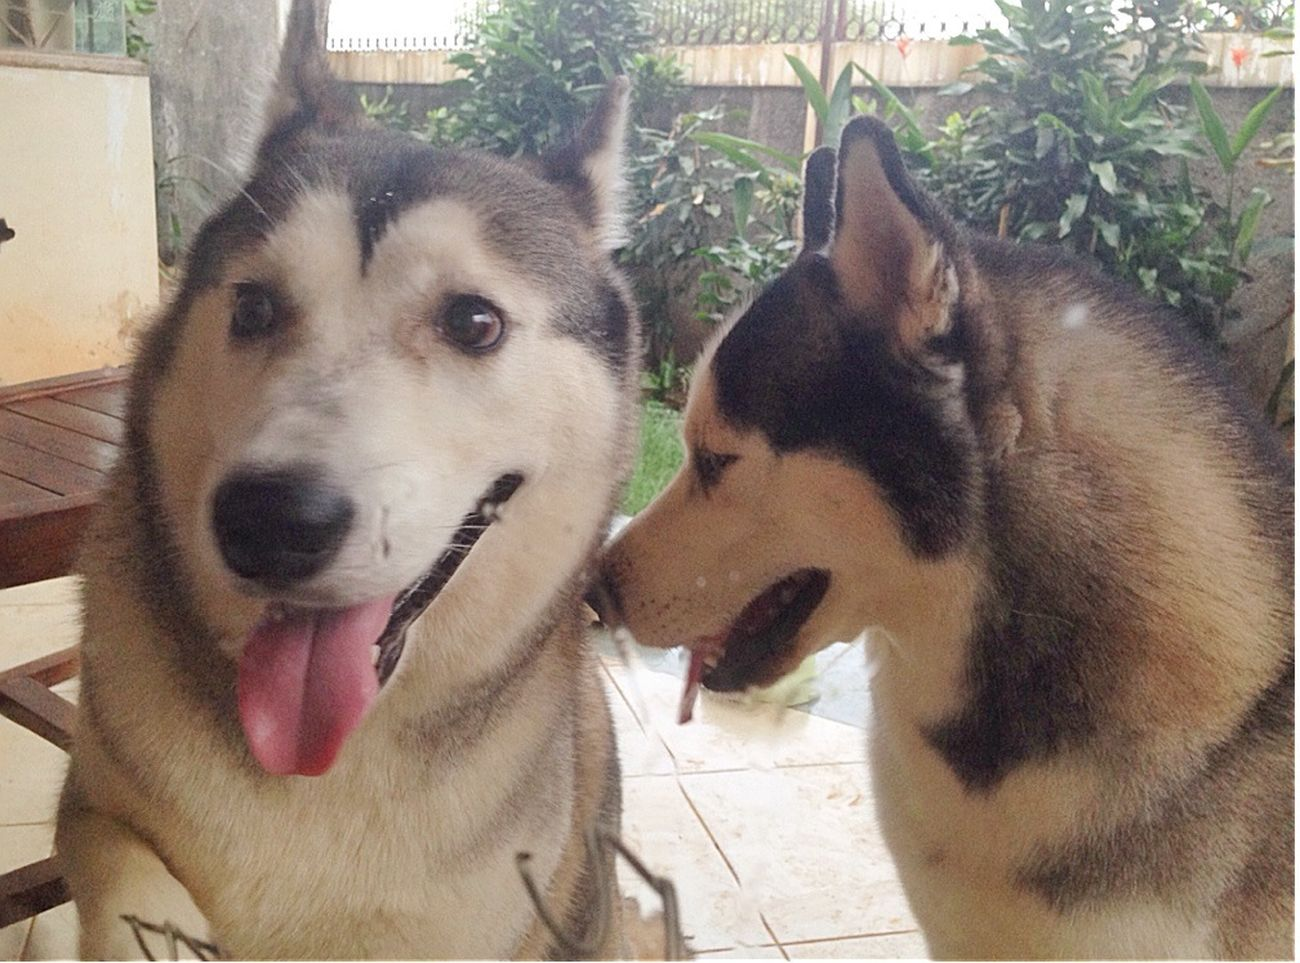 Kazuo & Baileys 😘 The Families By ITag Hobbies By ITag Pets By ITag Animal By ITag